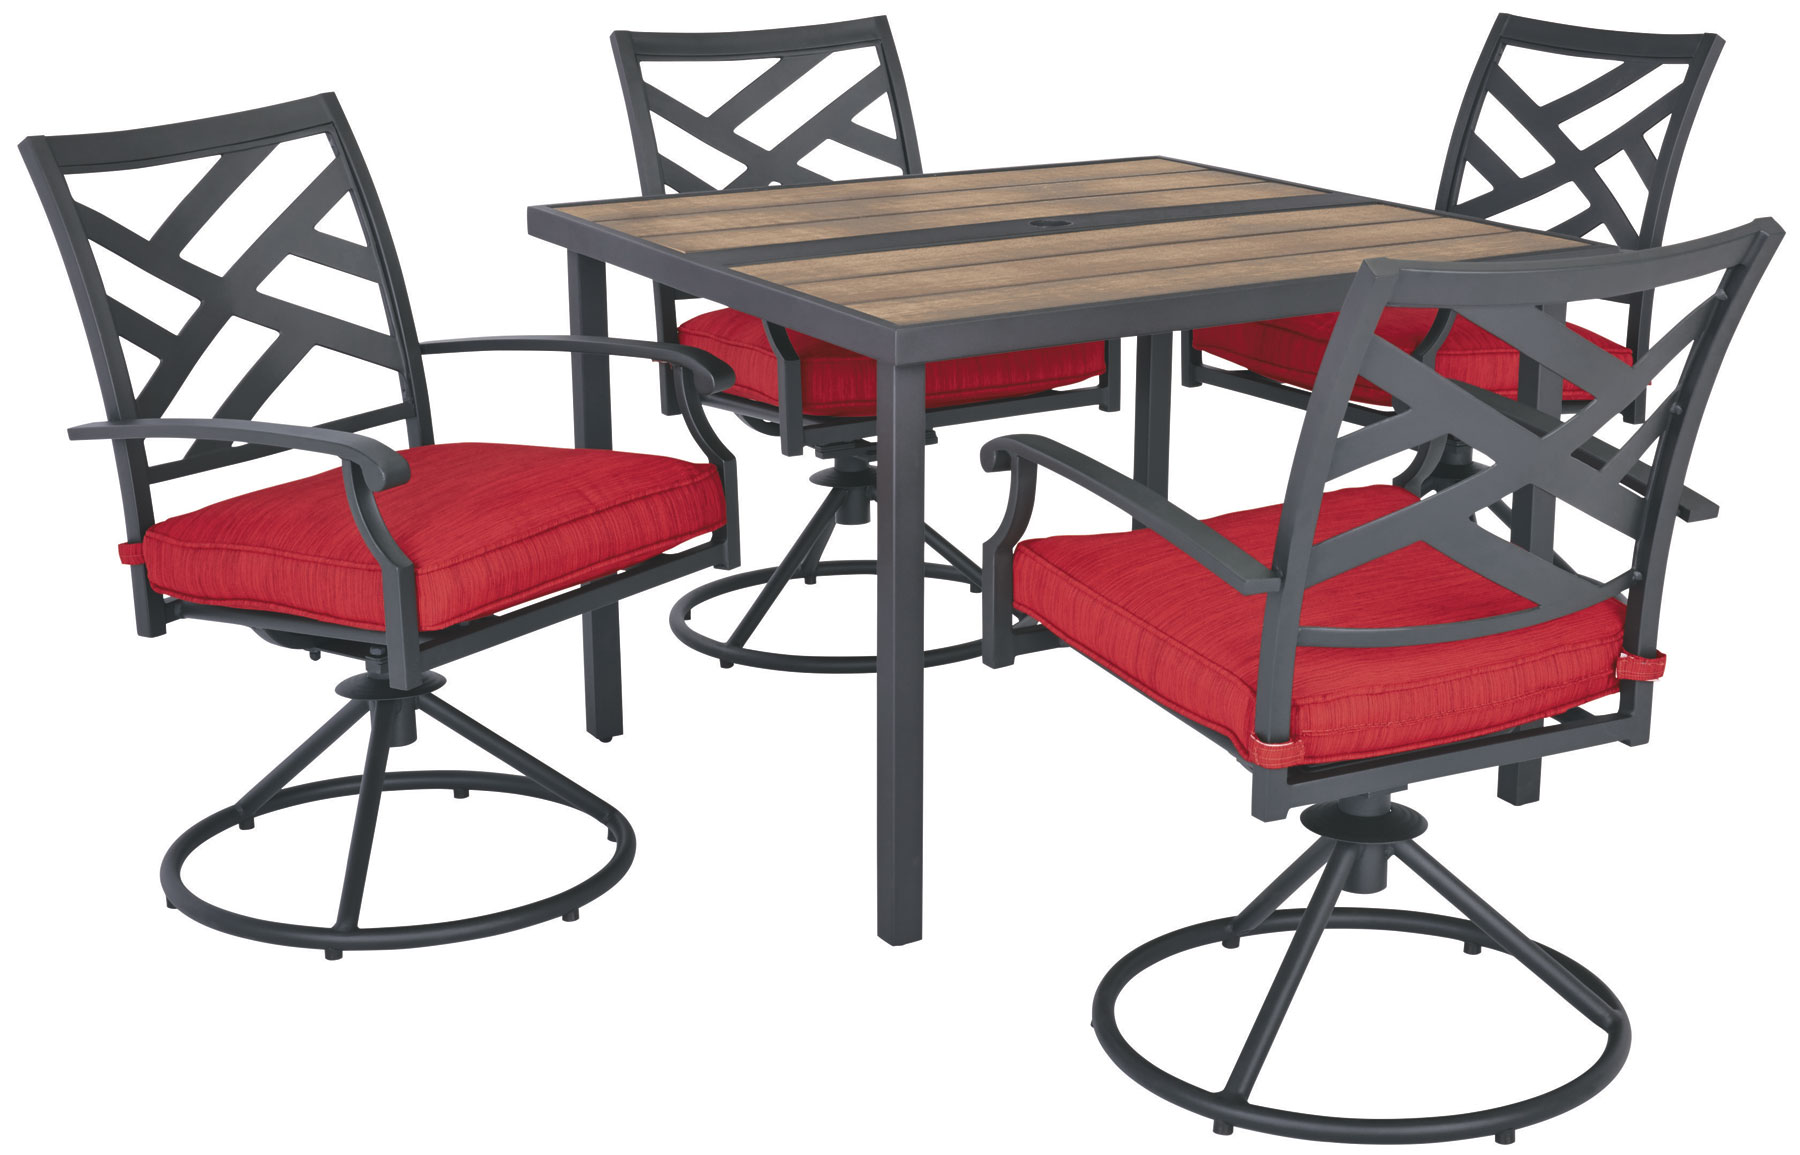 Outdoor Living - Great Lakes Ace Hardware Store on Ace Outdoor Living id=75585